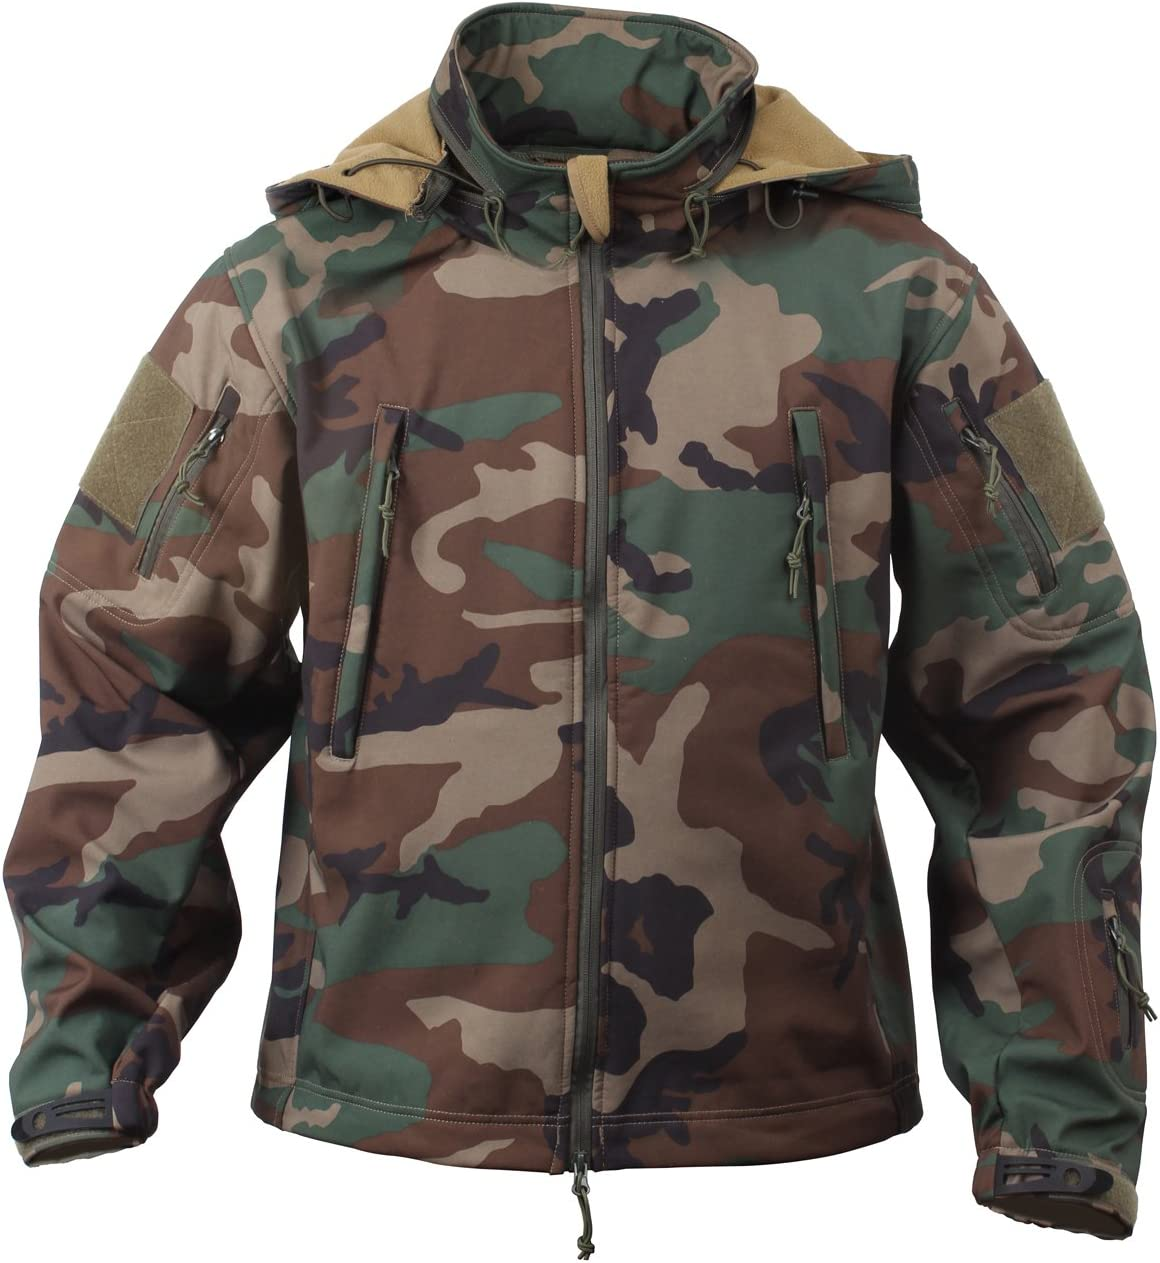 best hunting jackets: Rothco Special Ops Soft Shell Jacket